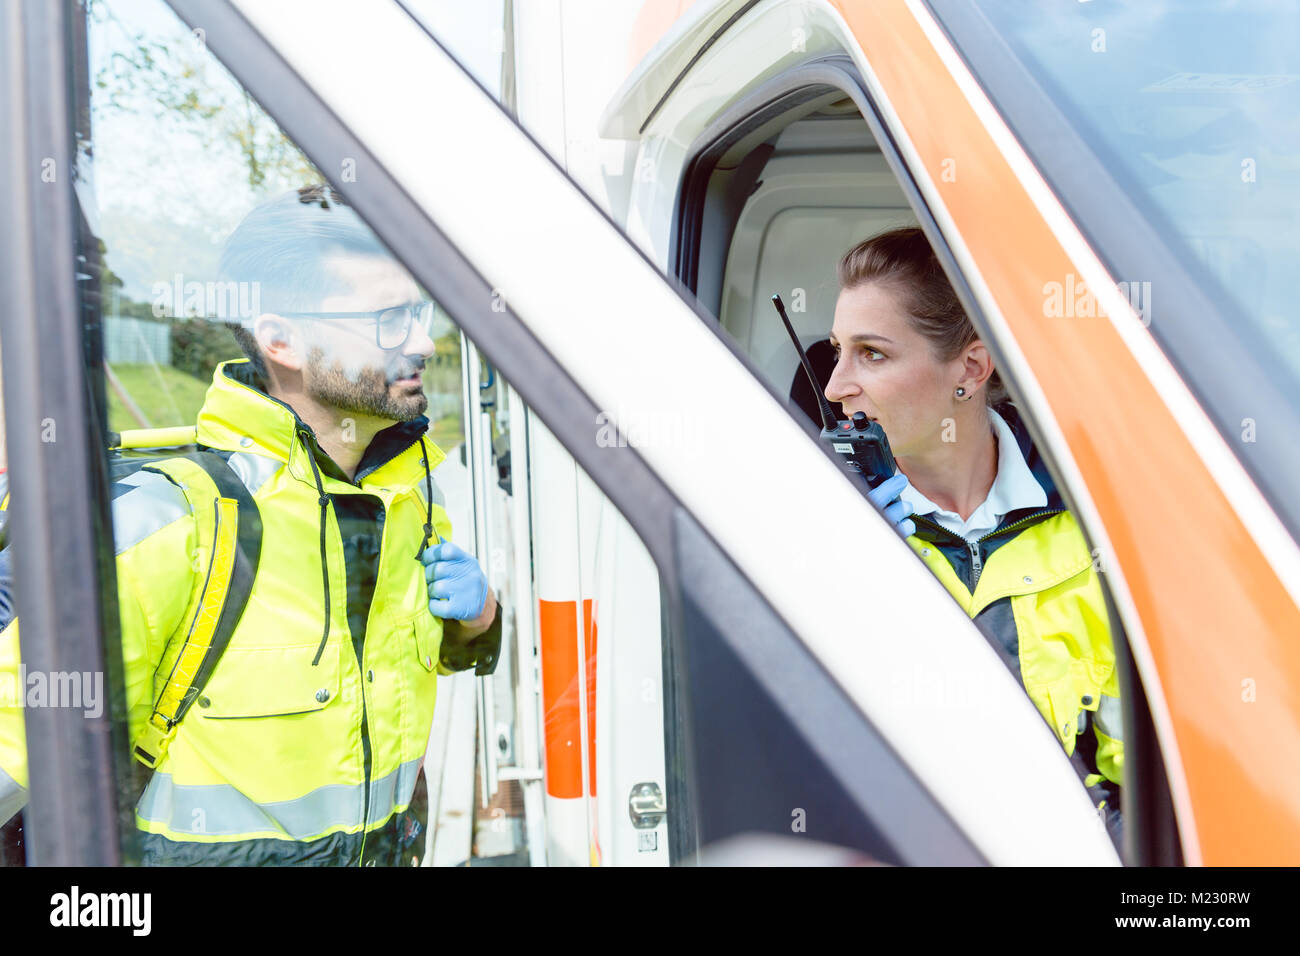 Paramedics in ambulance in radio contact with headquarters - Stock Image